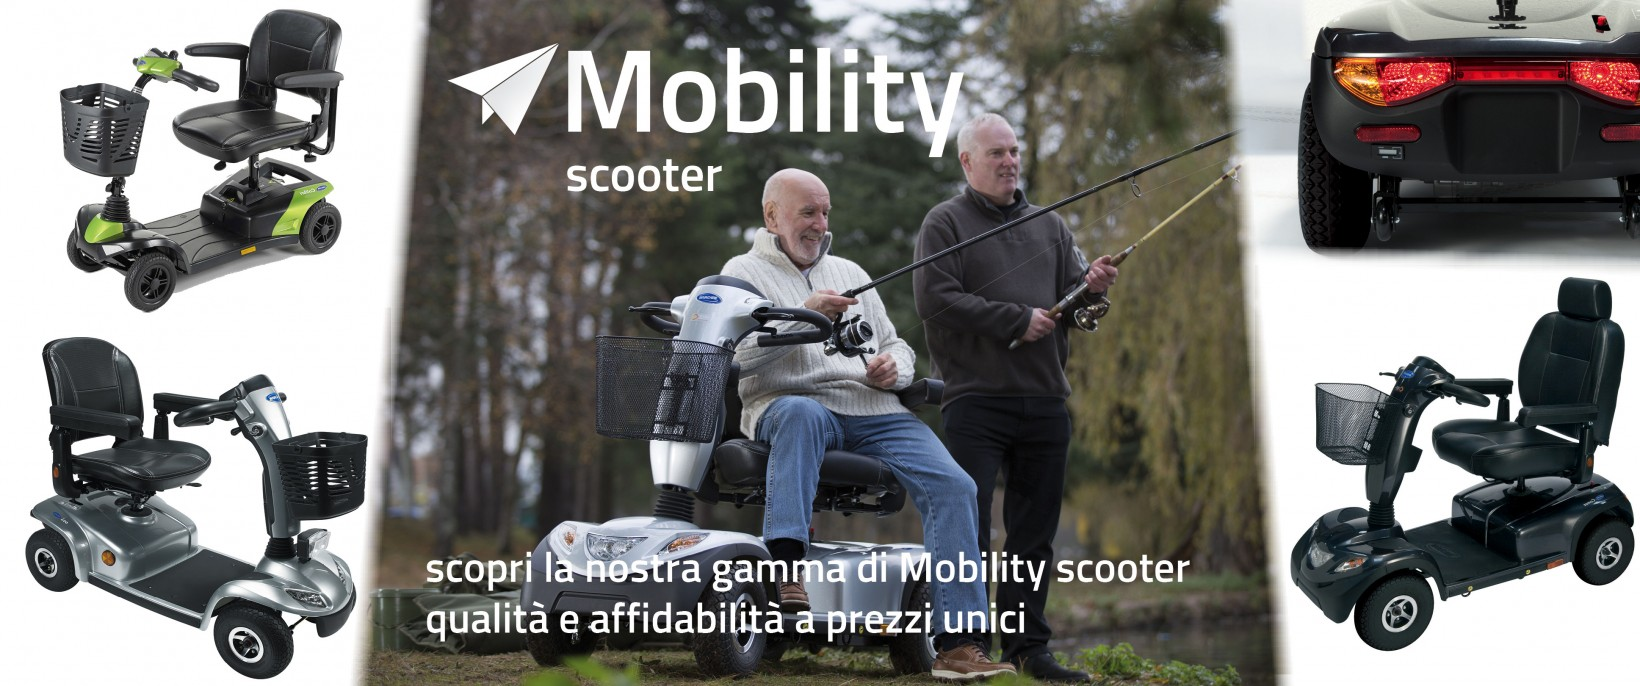 Mobility Outdoor Mobility scooter